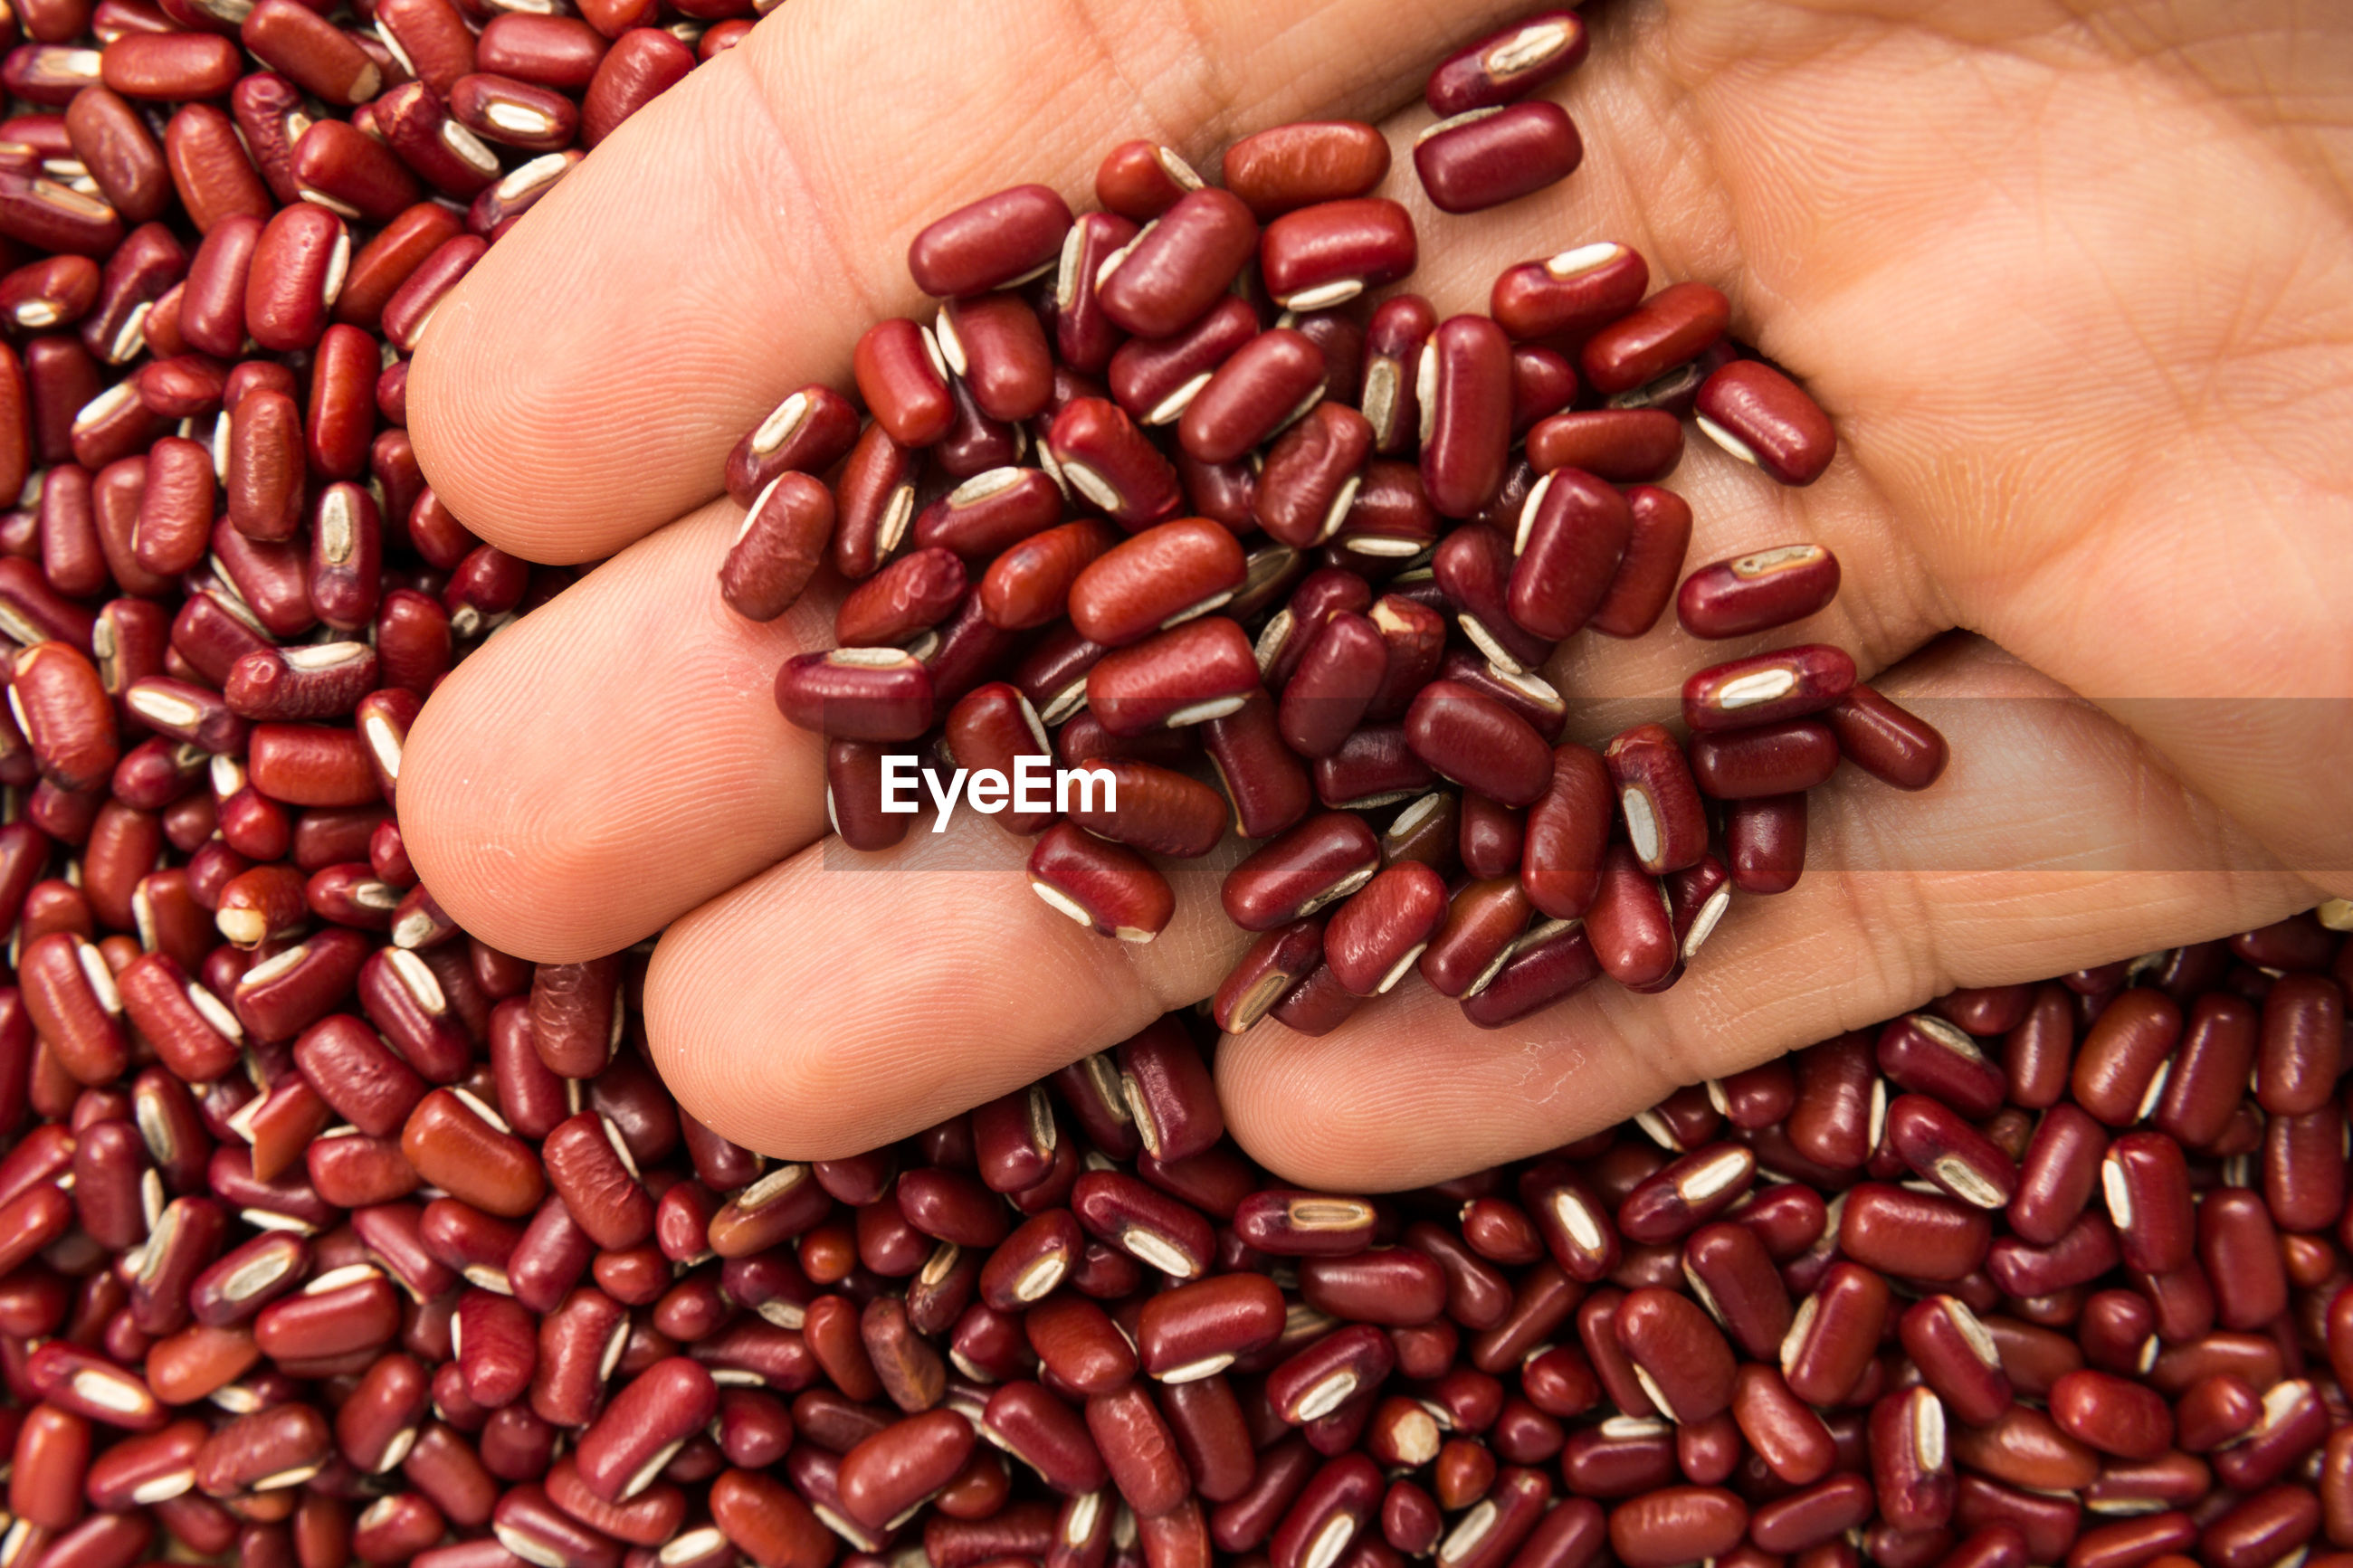 CLOSE-UP OF HUMAN HAND HOLDING BEANS